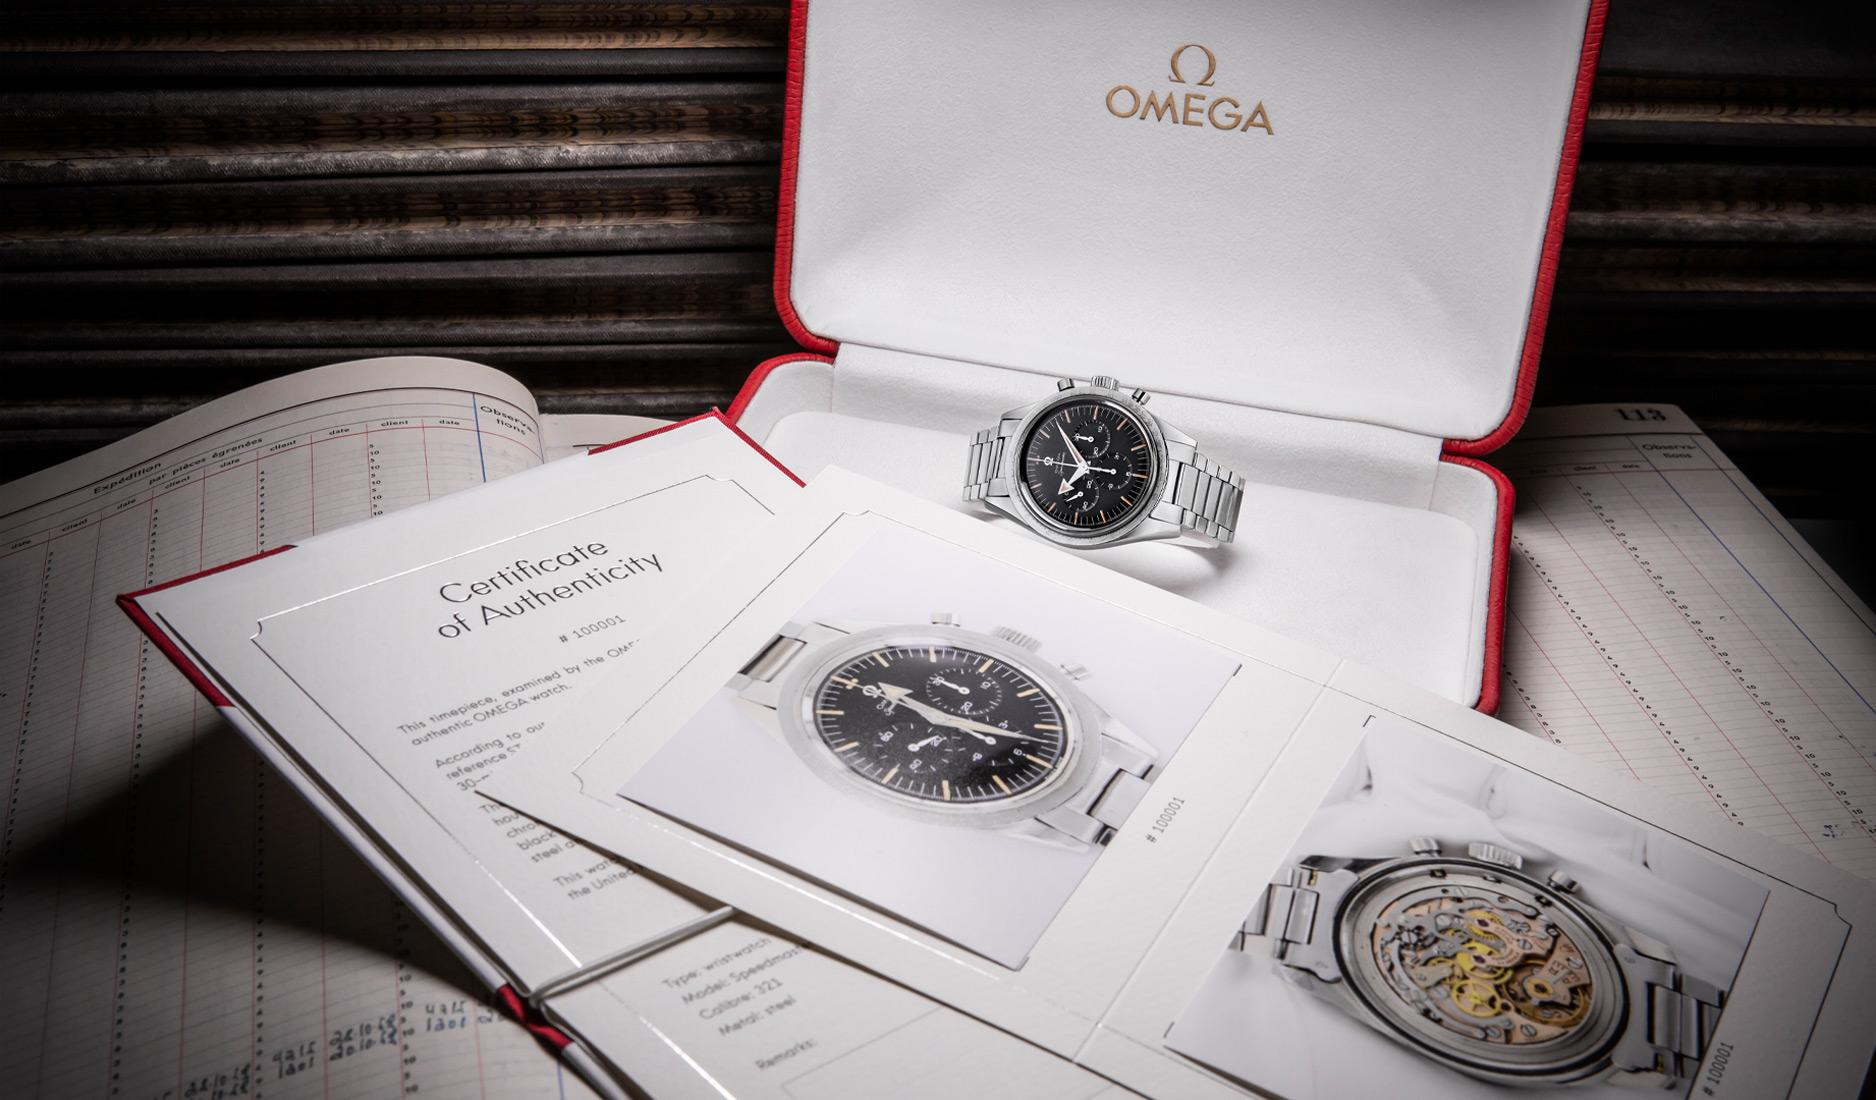 Omega Certificate of Authenticity